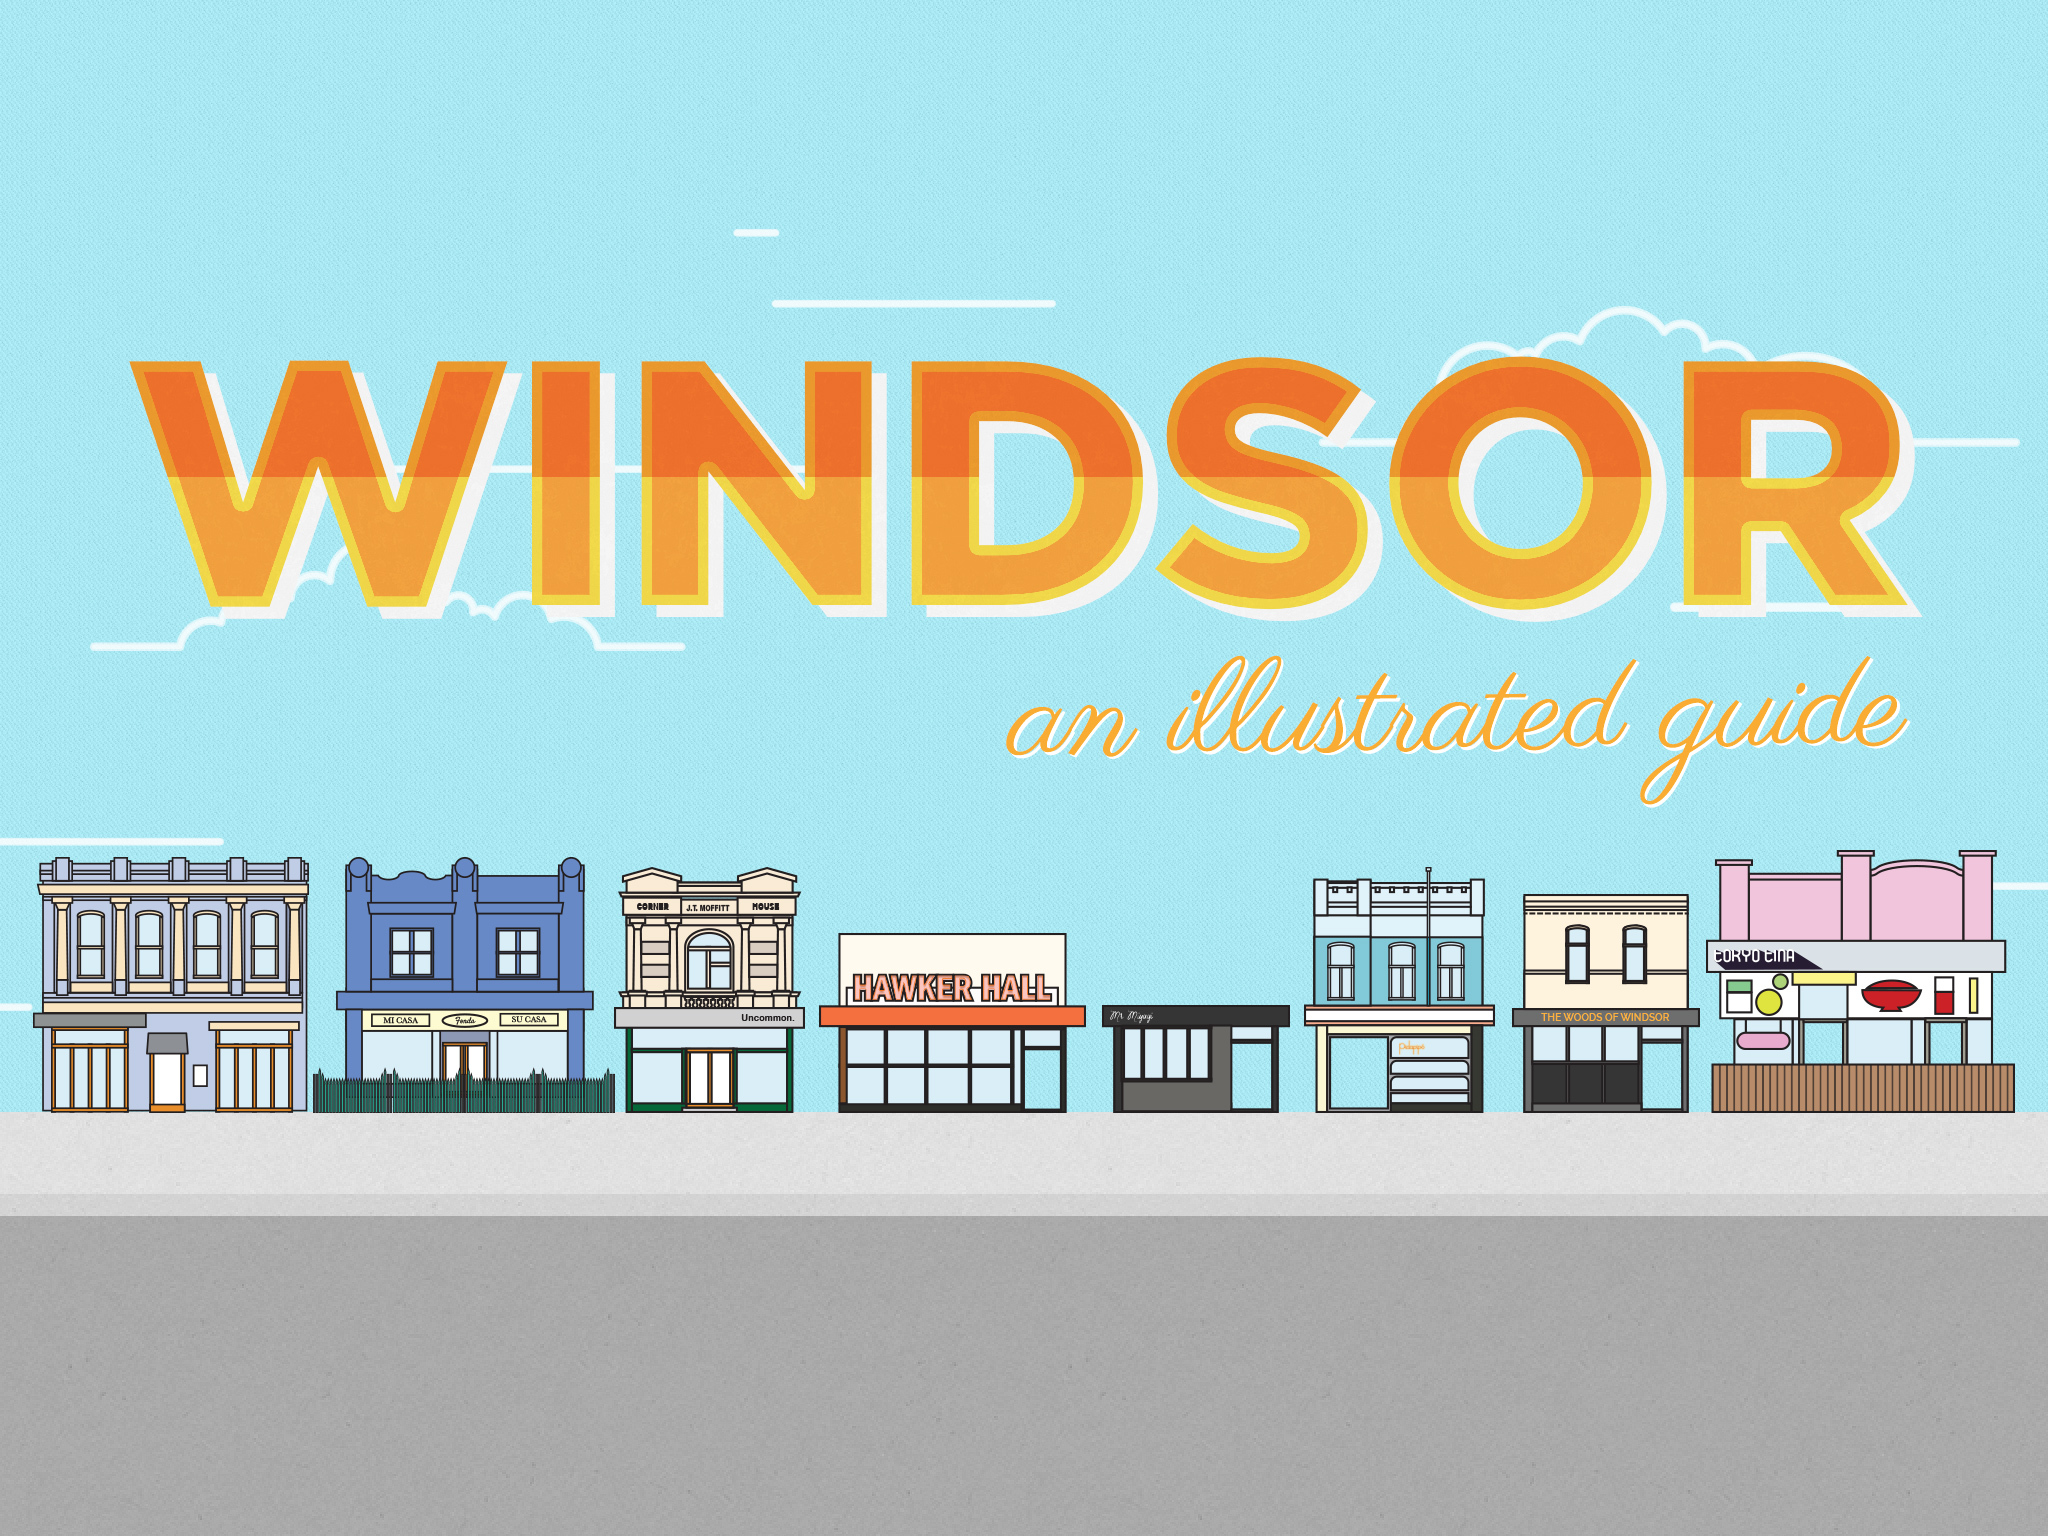 Windsor lead illustration